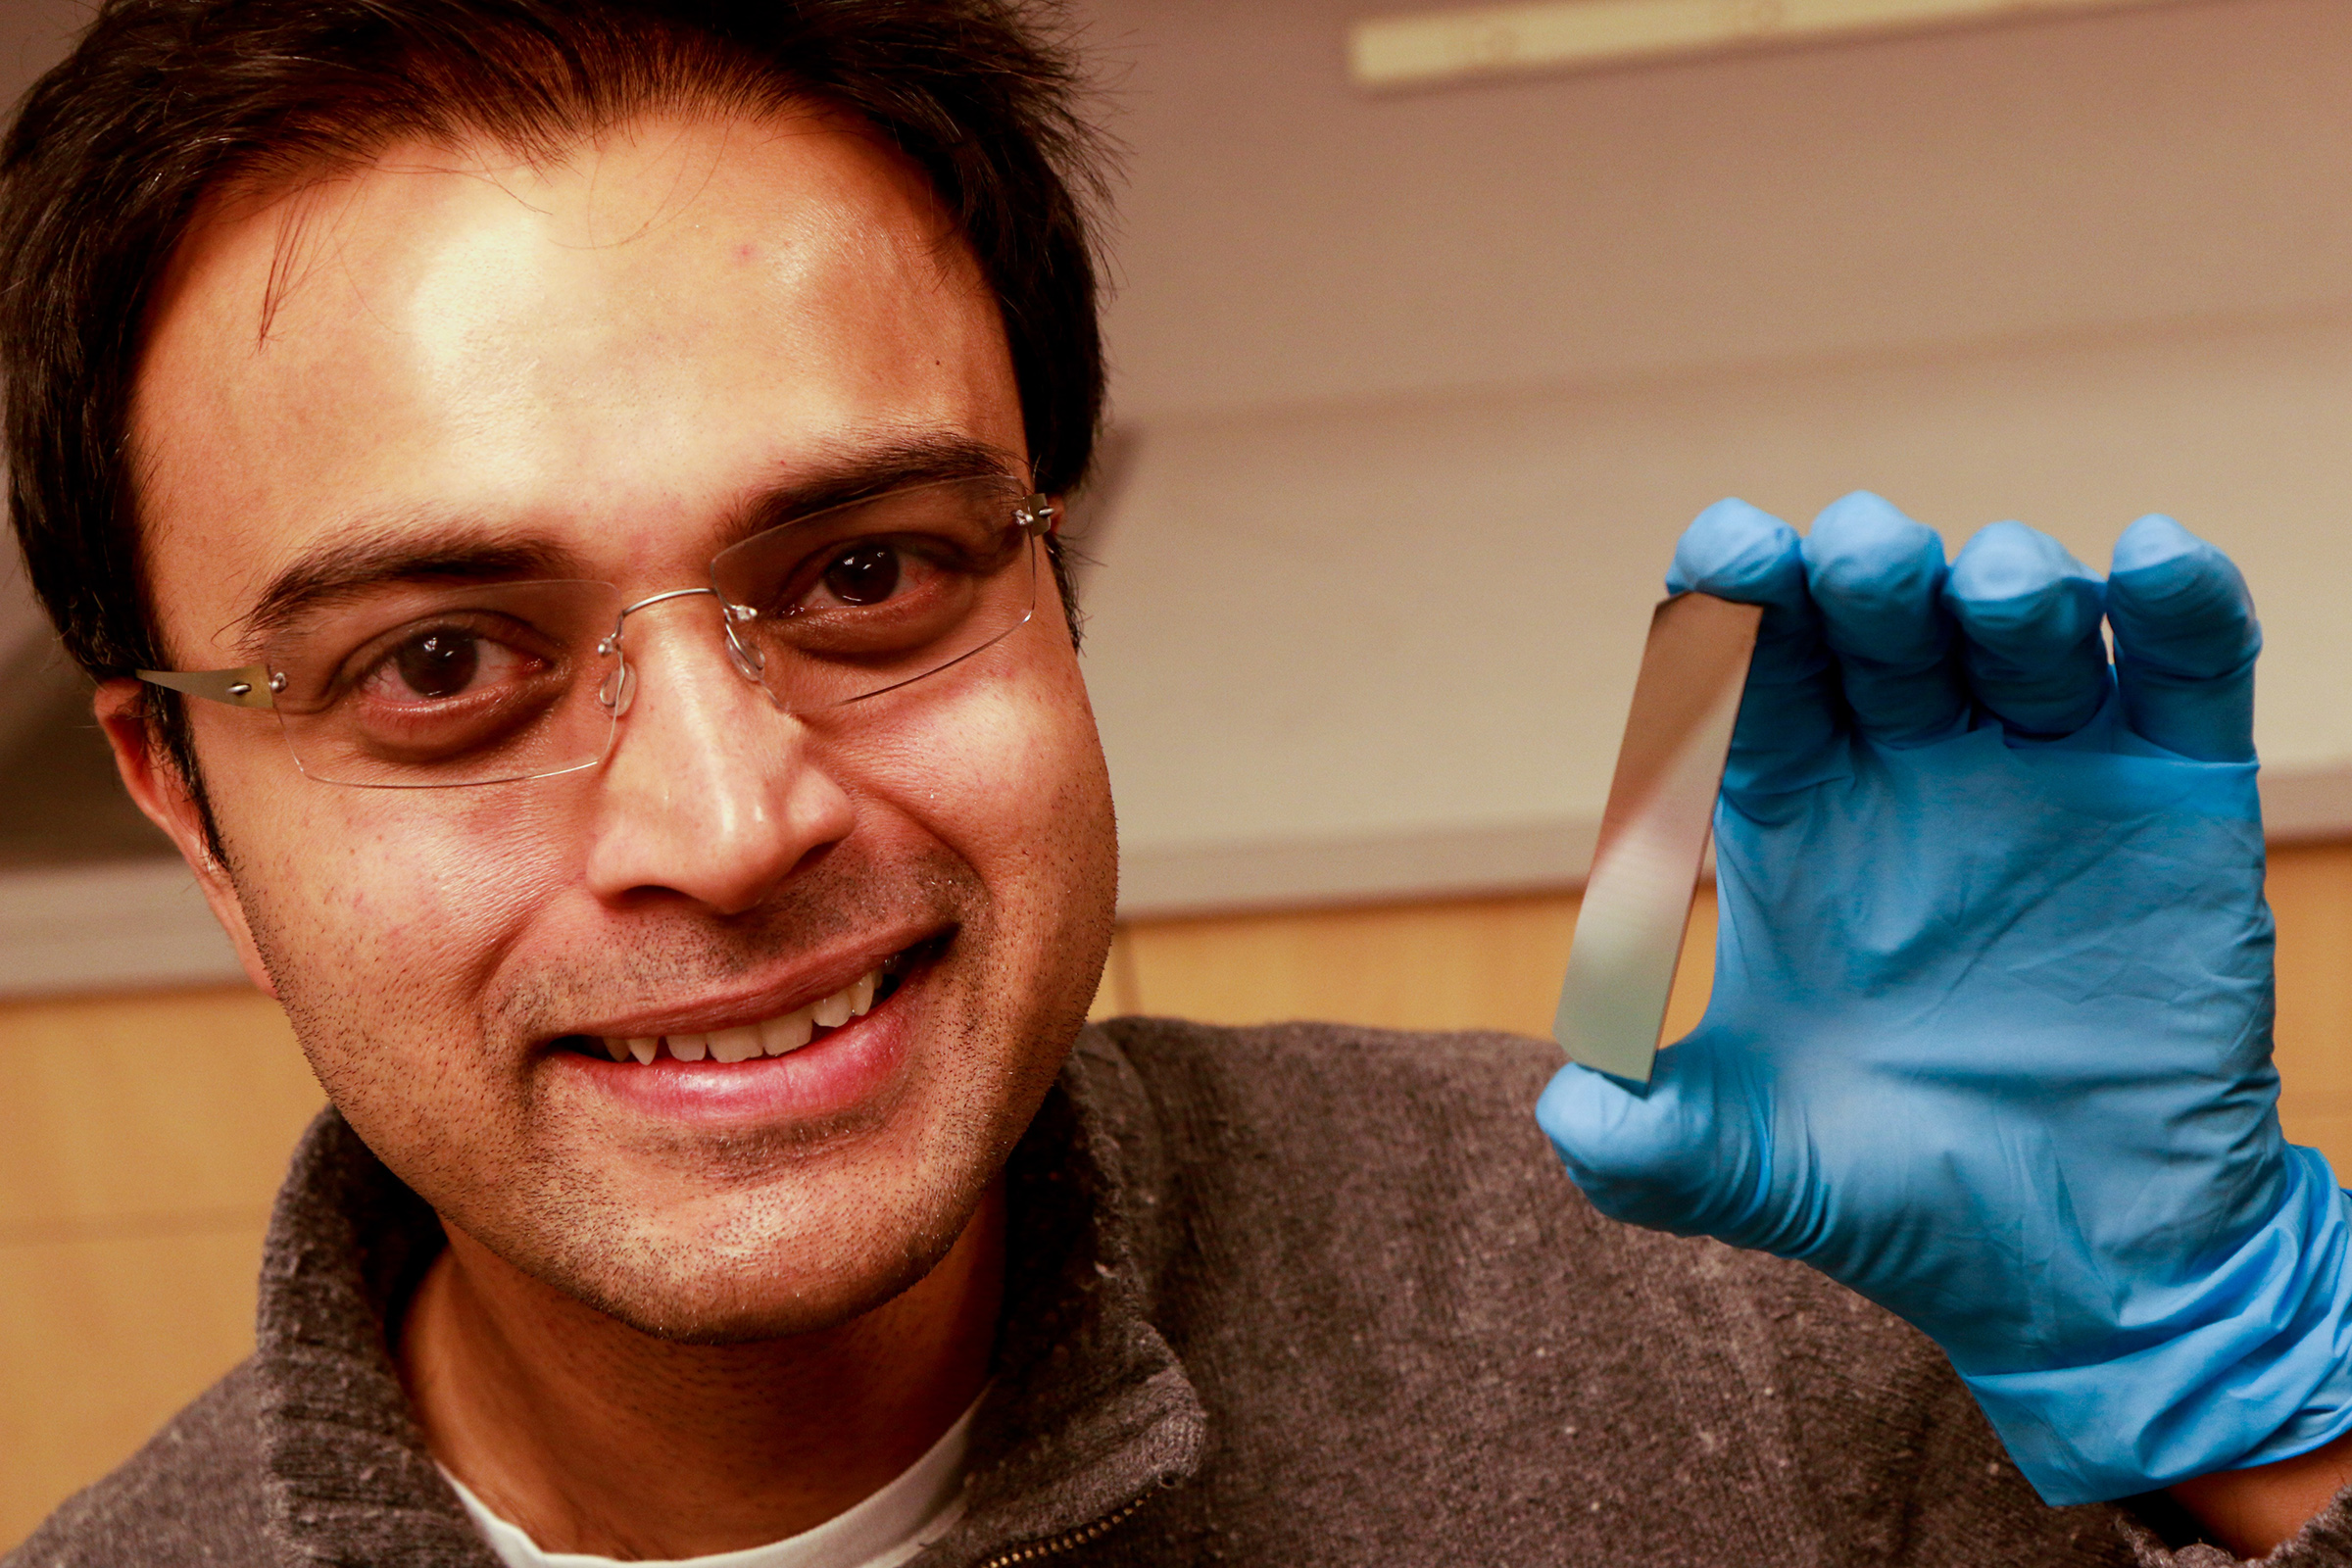 University of Utah electrical and computer engineering associate professor, Rajesh Menon, holds up a piece of silicon that has been etched with microscopic pillars and holes to create a polarized filter. He leads a team of researchers that have developed a new polarizer that can allow more light to pass through than conventional polarizers. This could lead to LCD displays for smartphones and tablets that last longer on a battery charge and cameras that can take better pictures at low light.